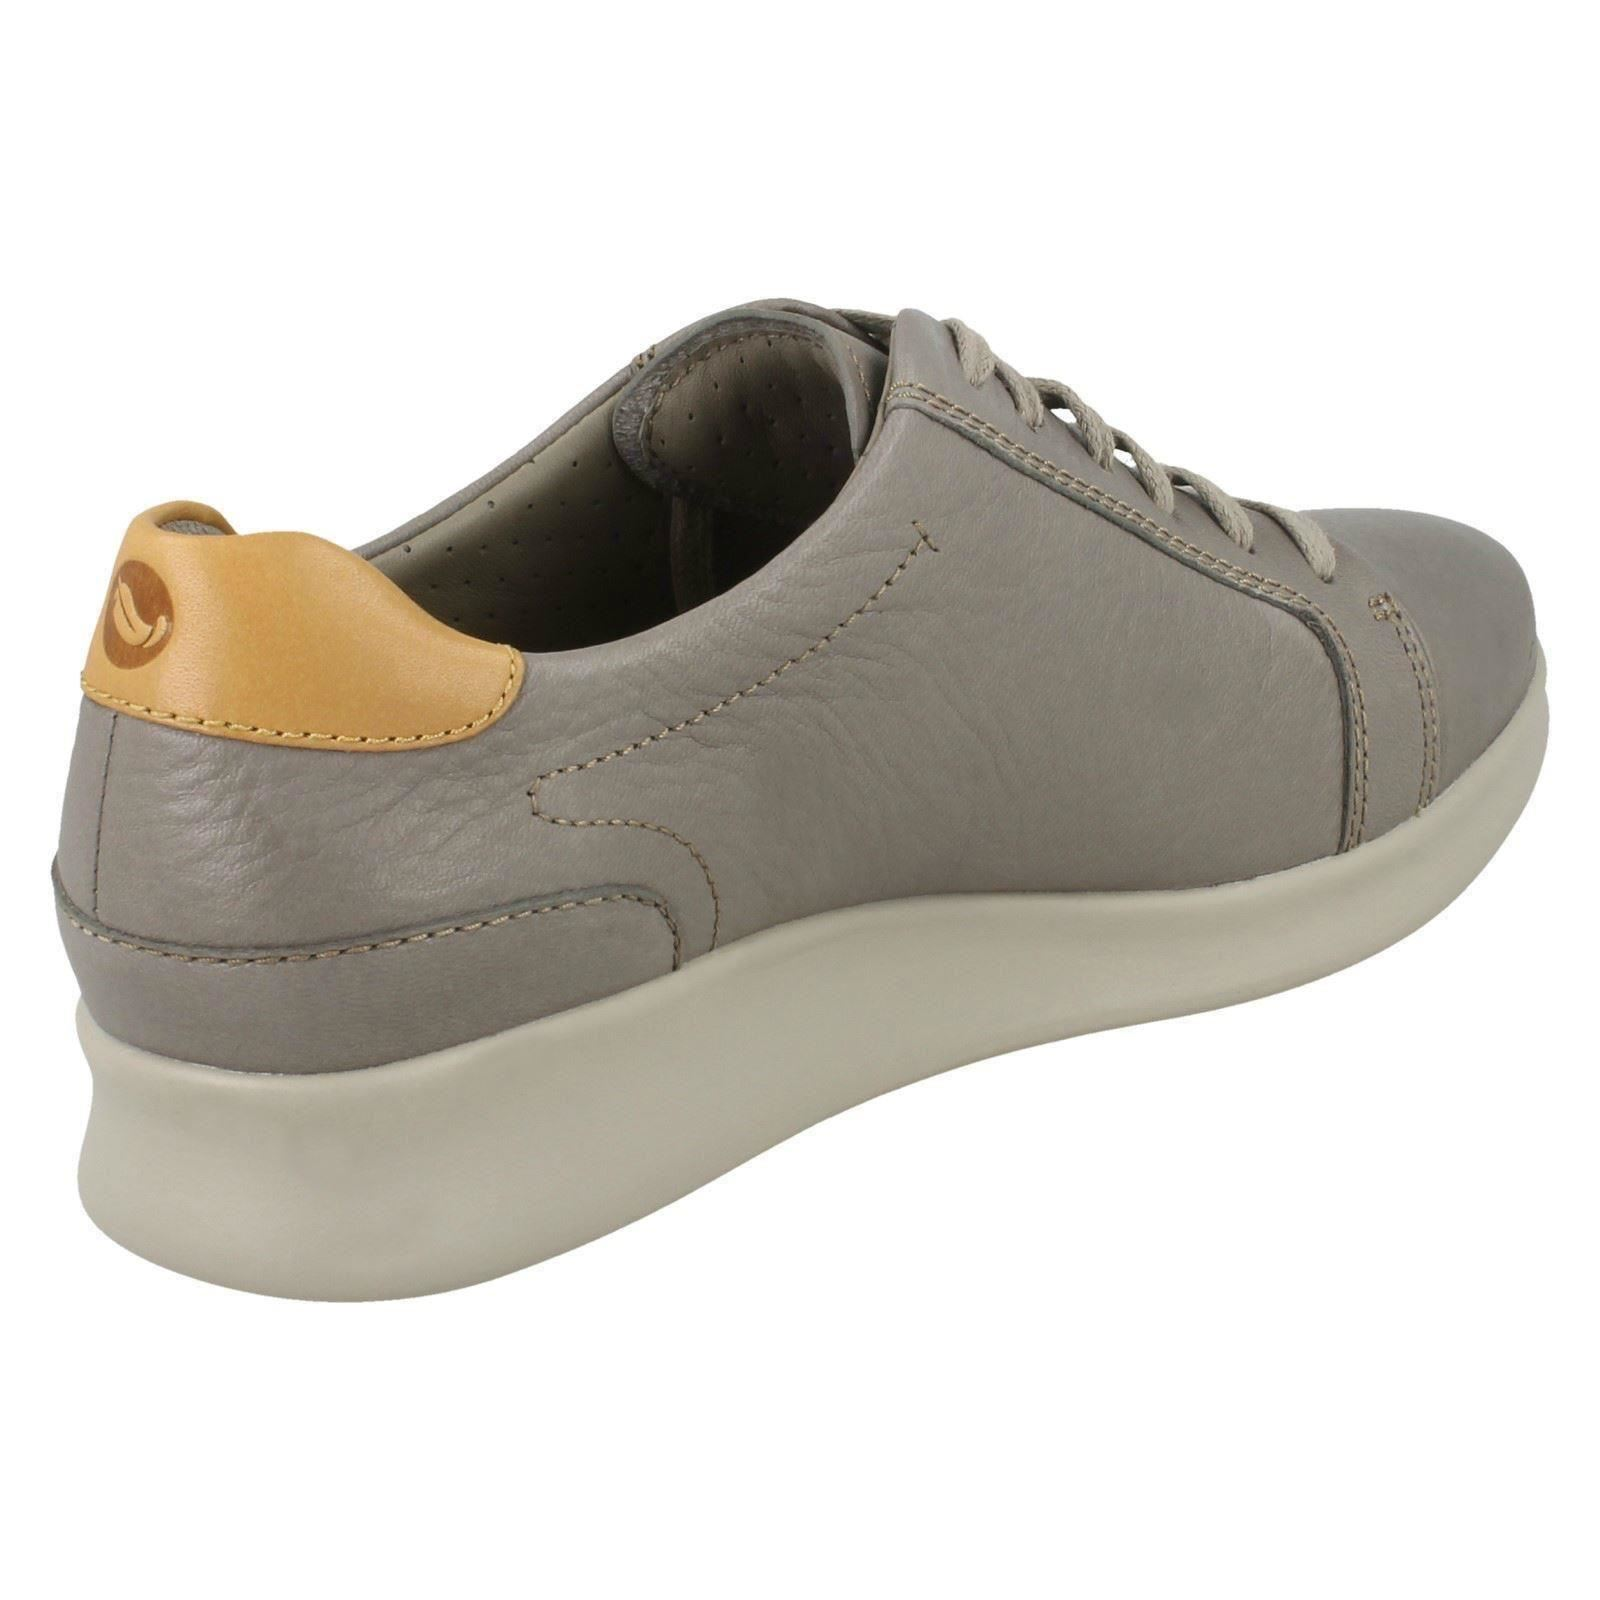 Details about Ladies Unstructured By Clarks Casual Shoes 'Un Flare'